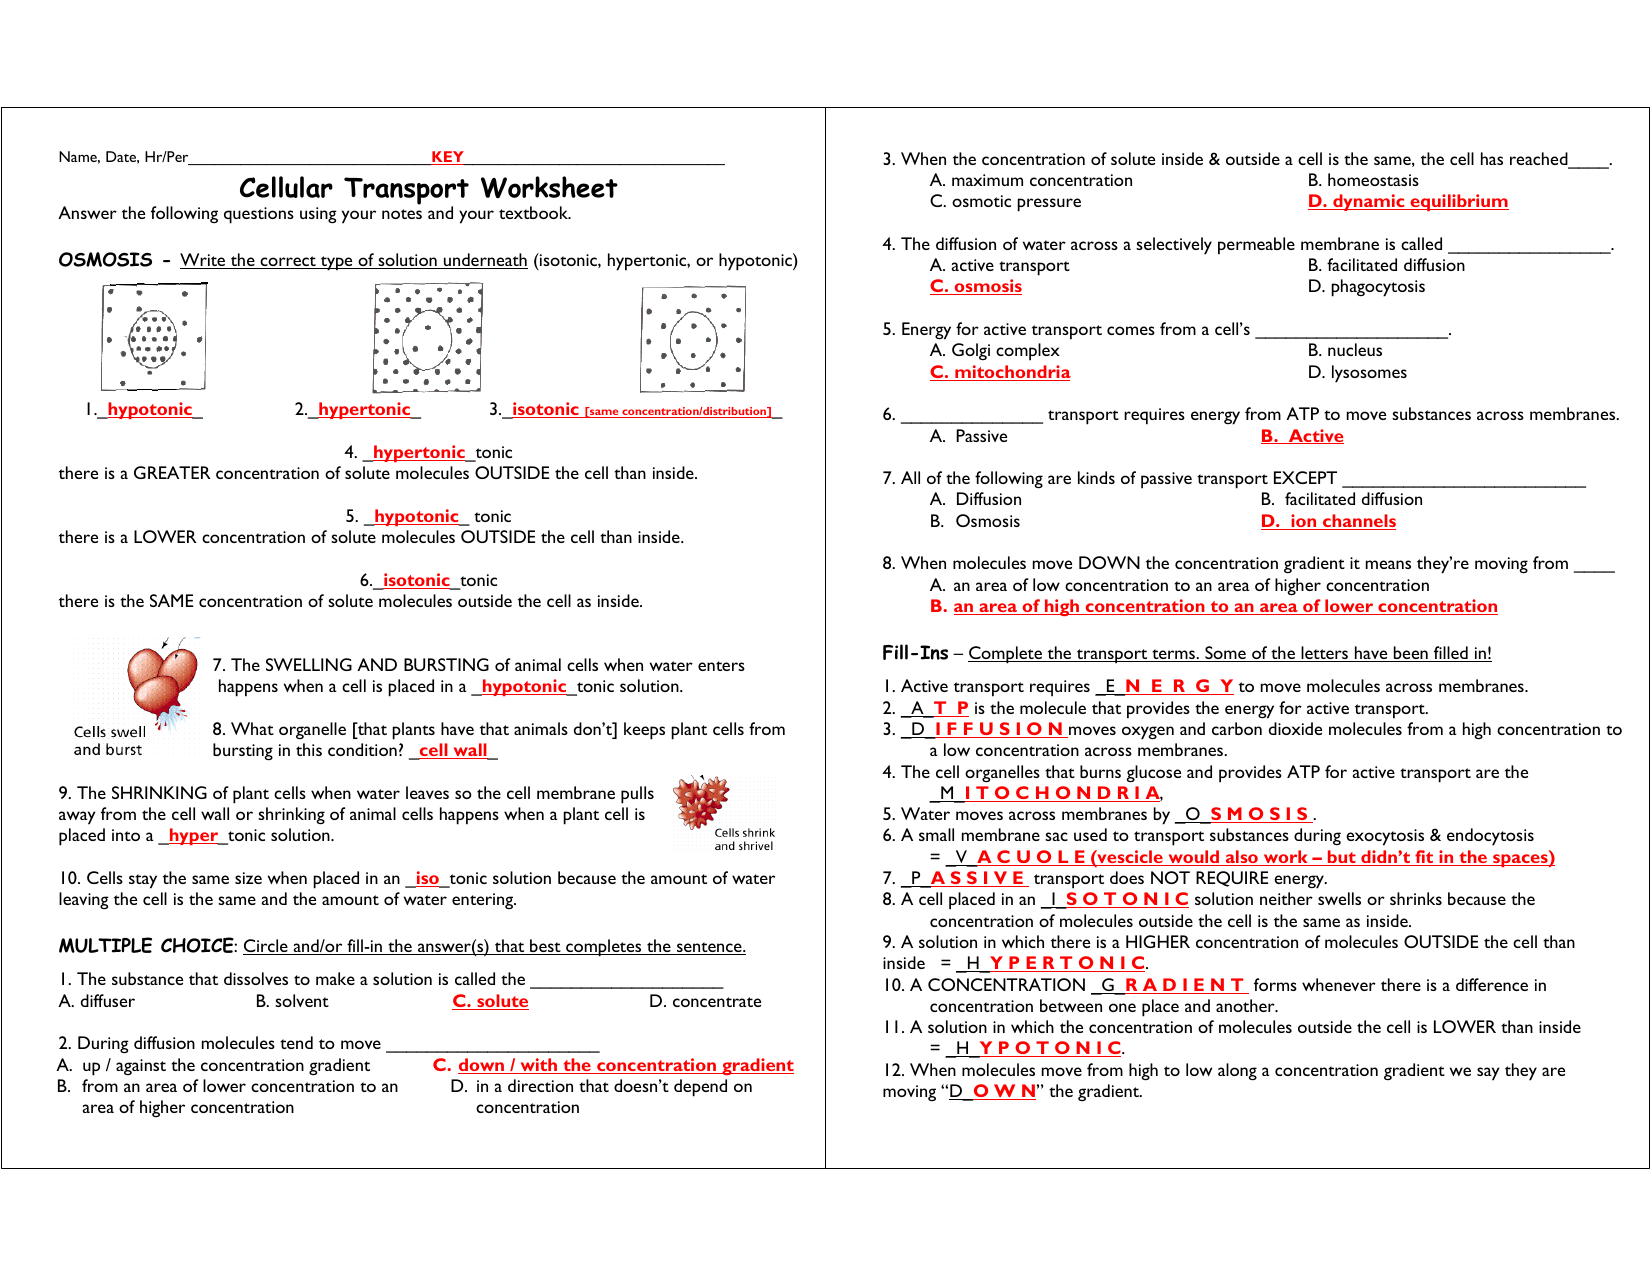 Chapter 7 Section 4 Cellular Transport Study Guide Answers